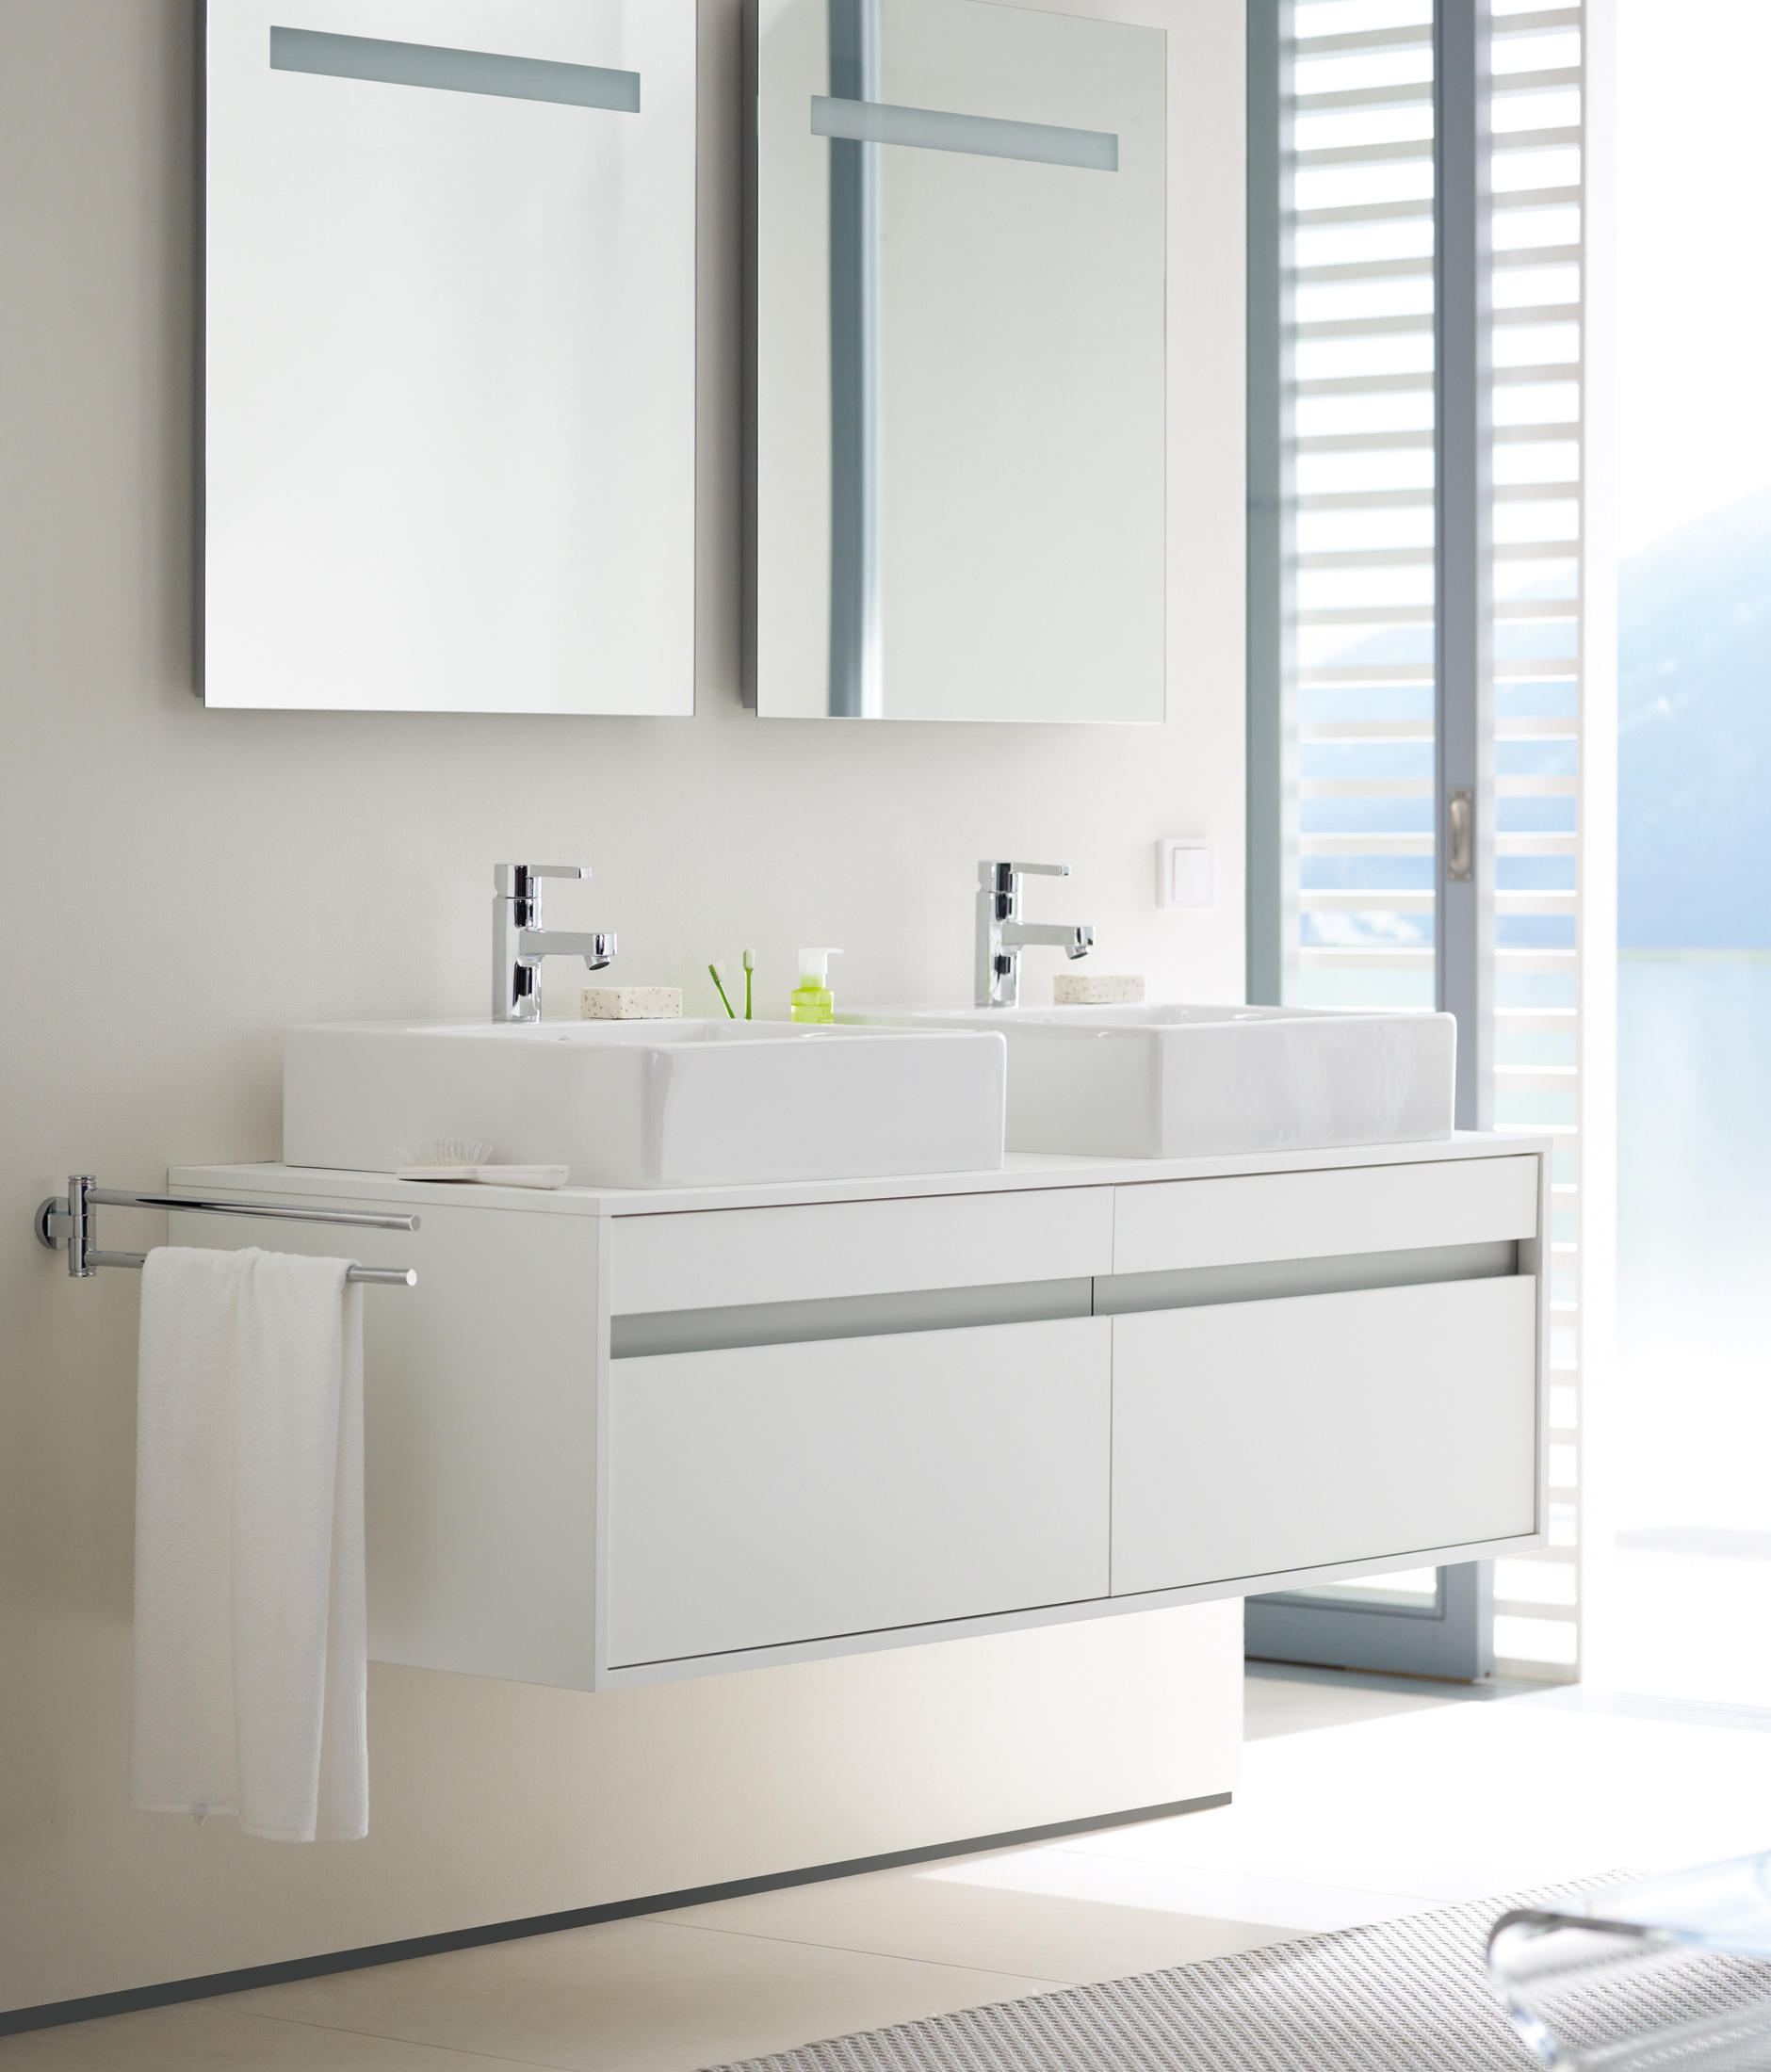 Duravit Bathrooms ketho - mirror cabinet - mirror cabinets from duravit | architonic